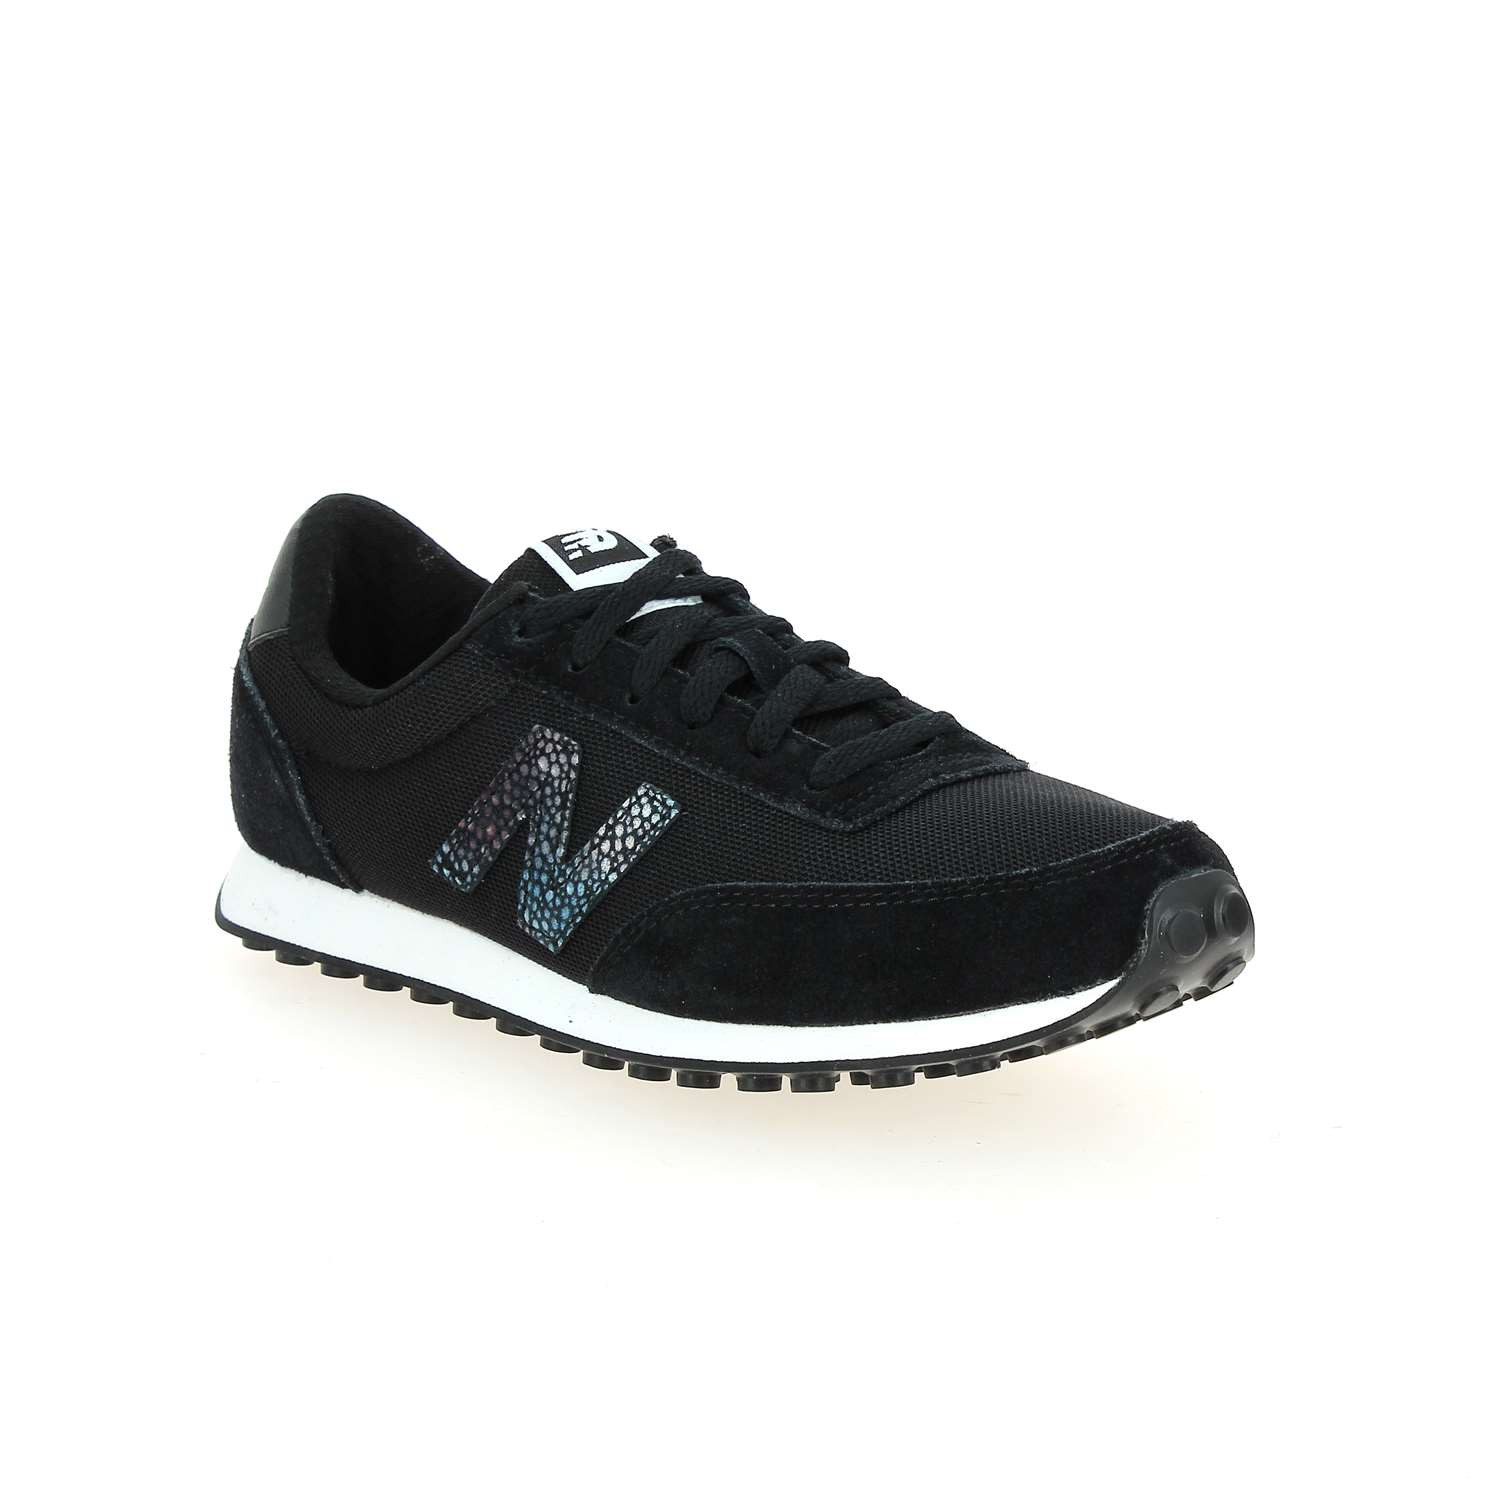 basquettes new balance femme